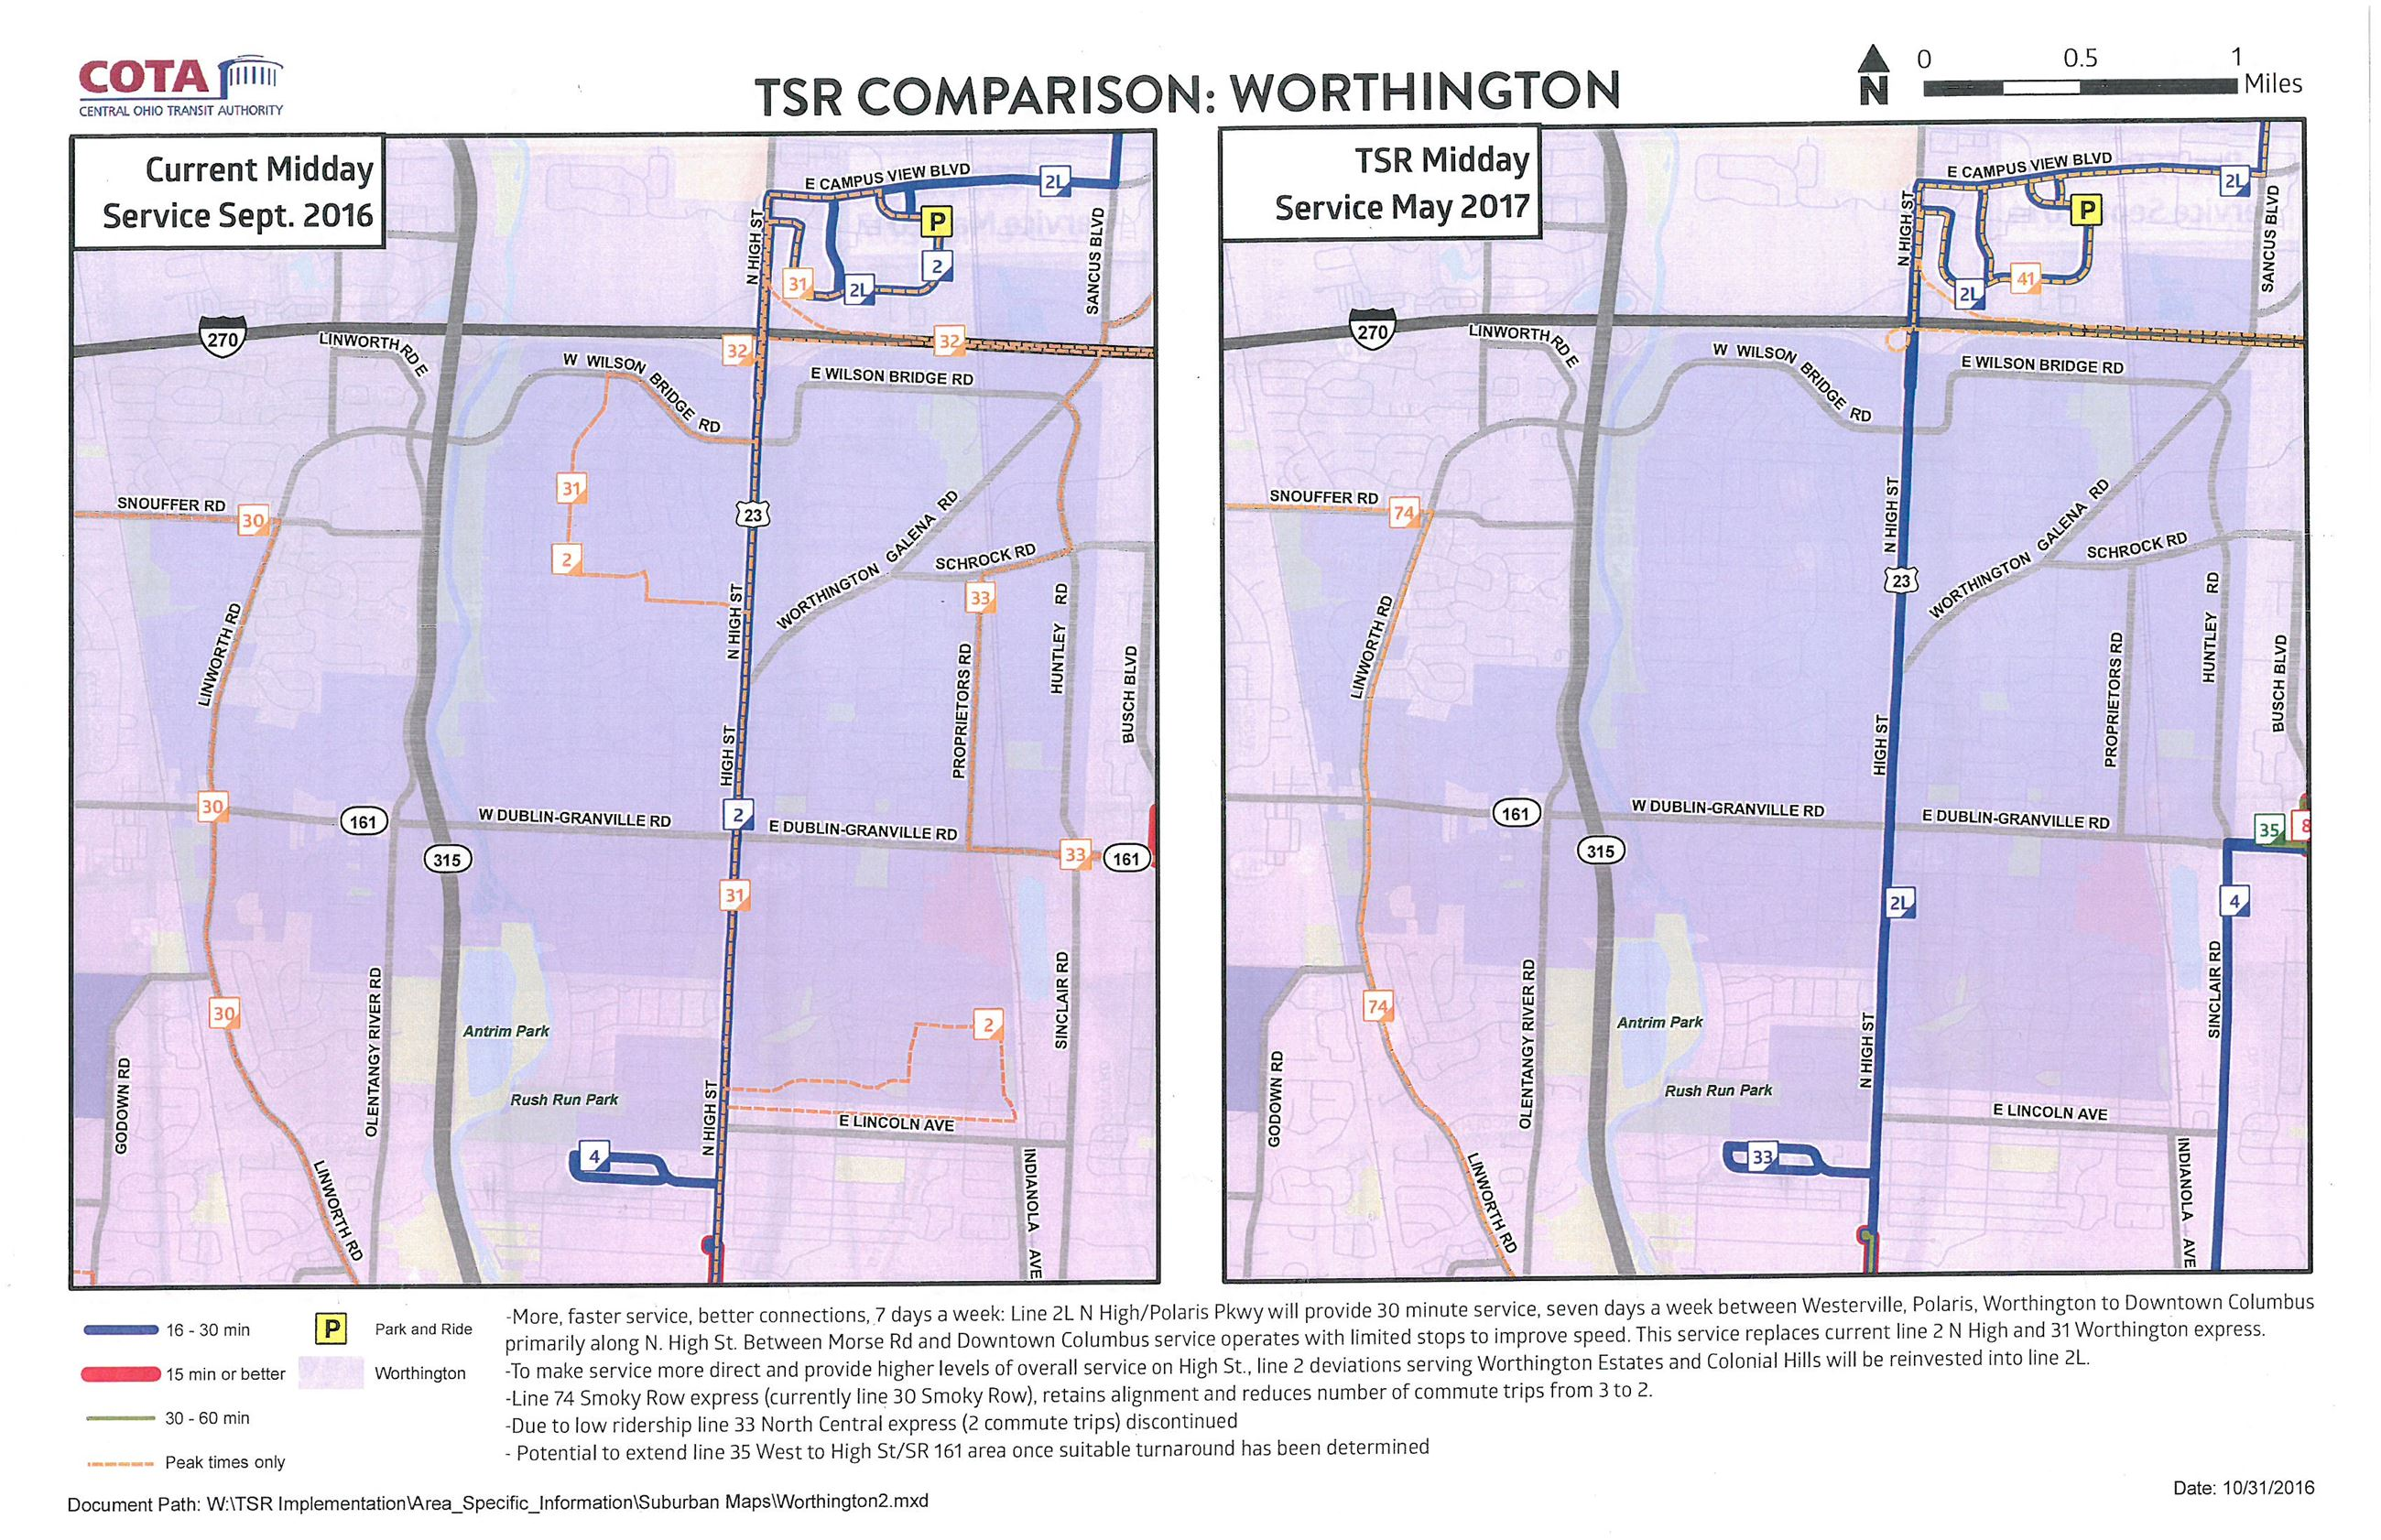 COTA/TSR Worthington changes